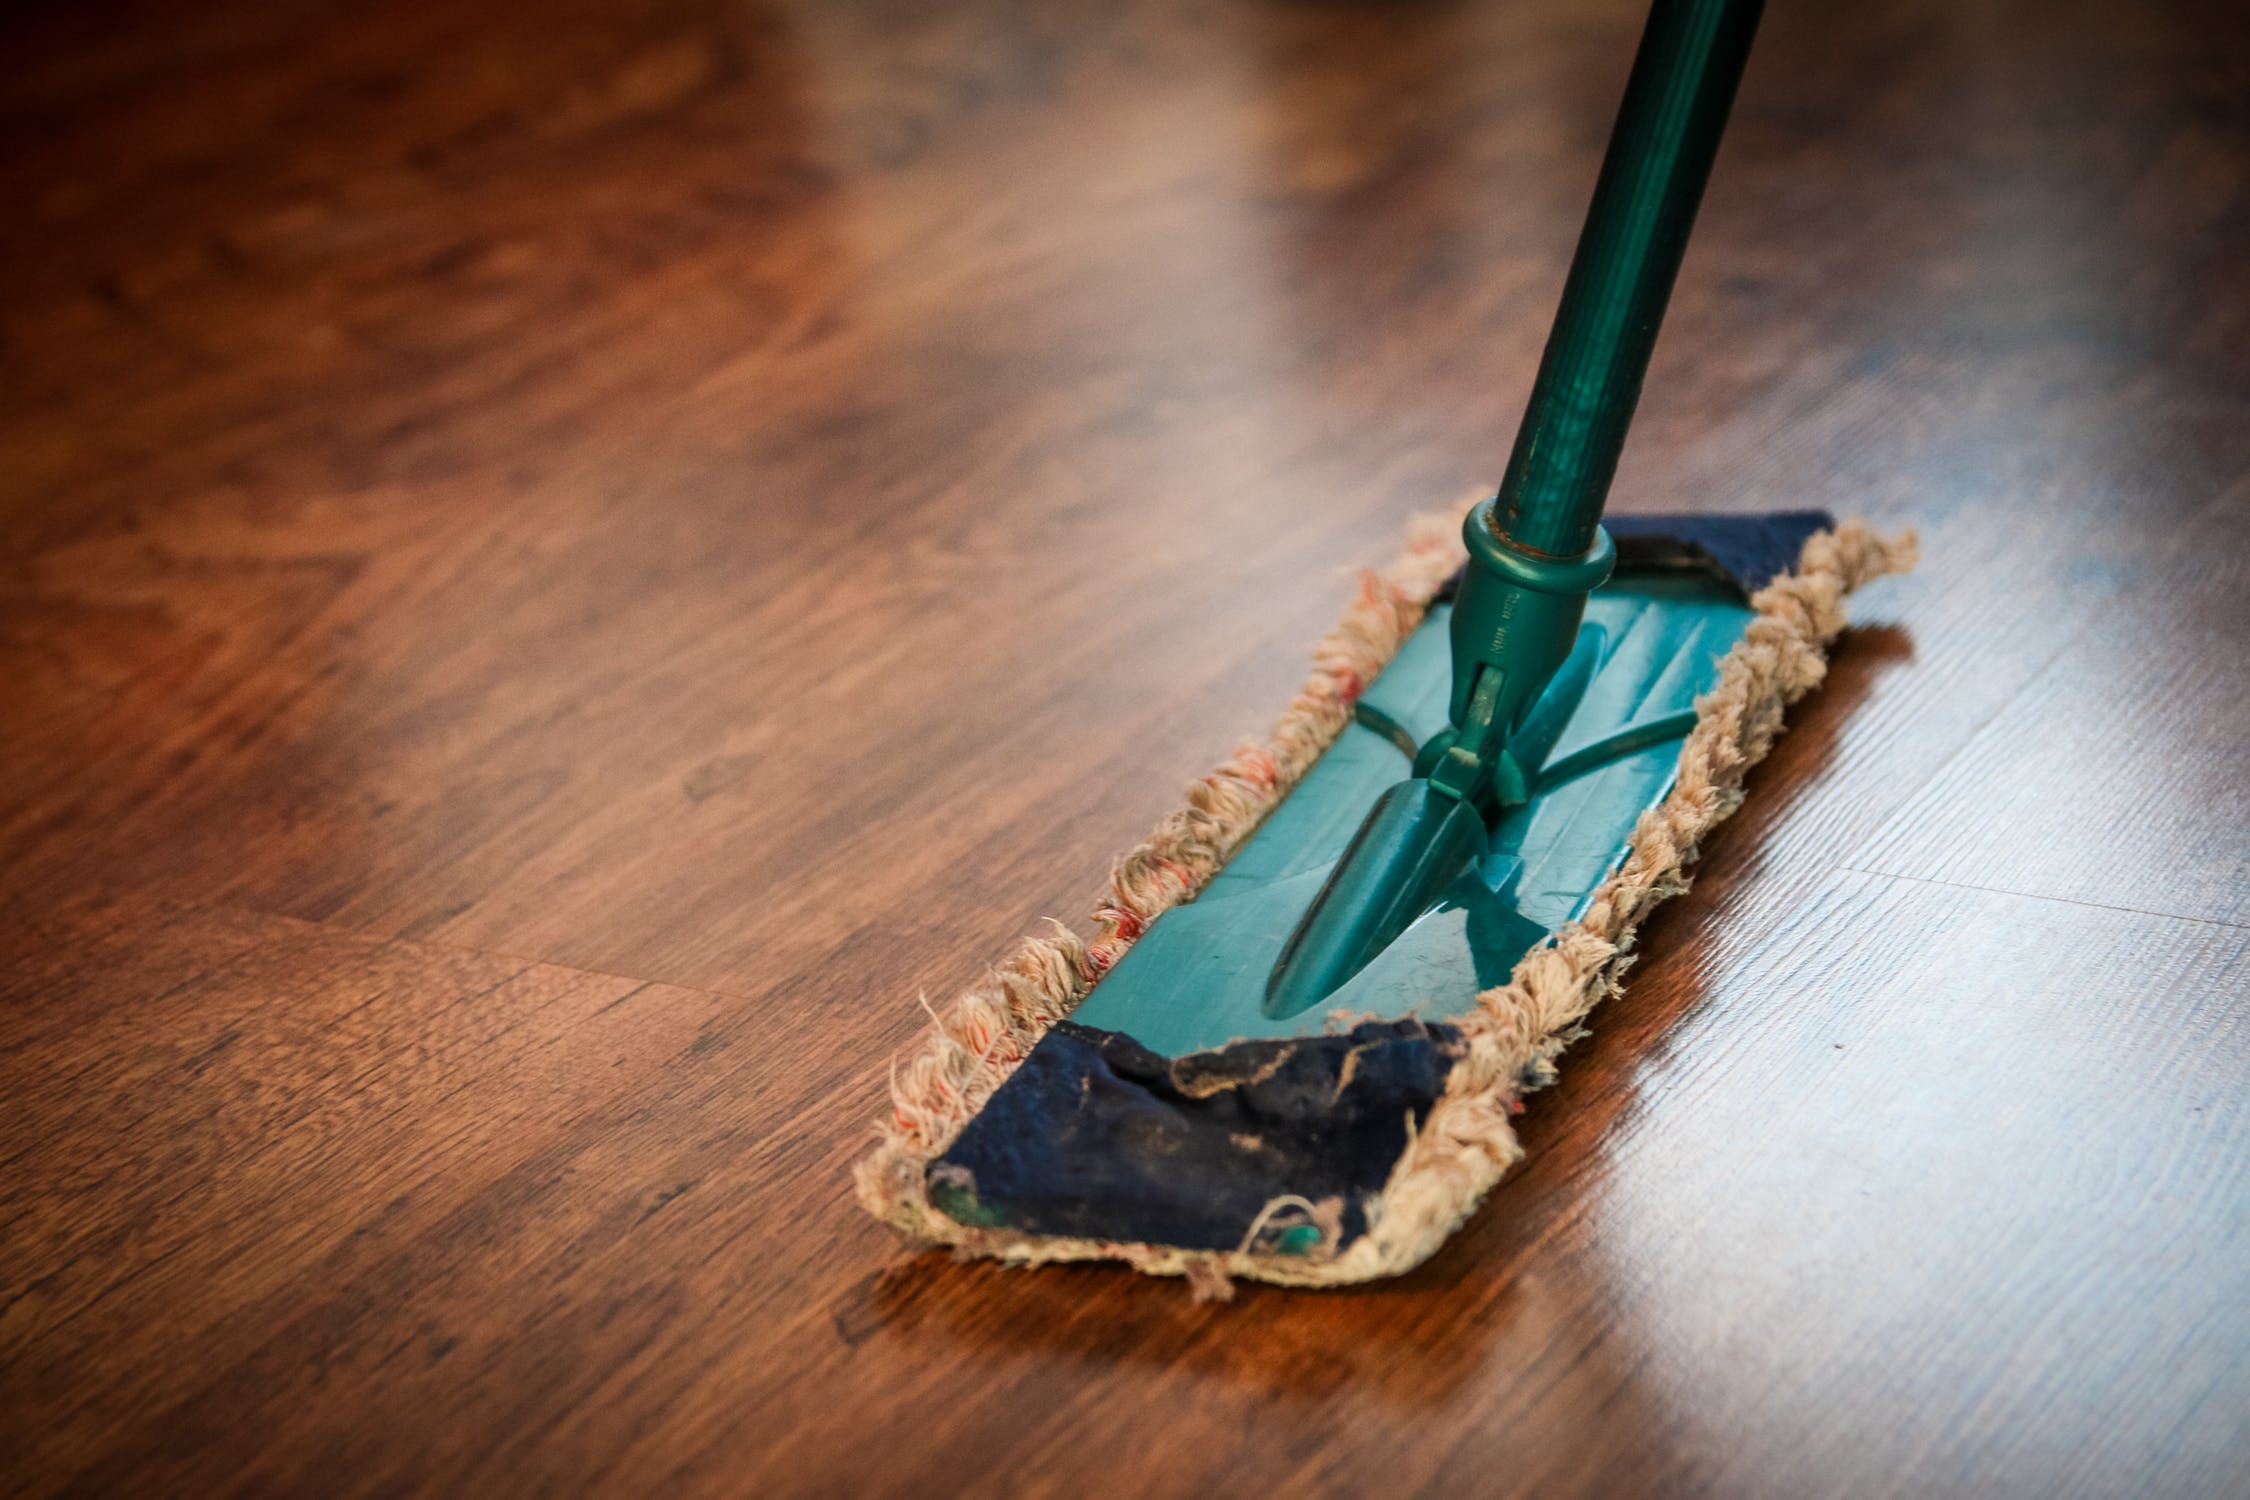 We will help you make your move out cleaning checklist